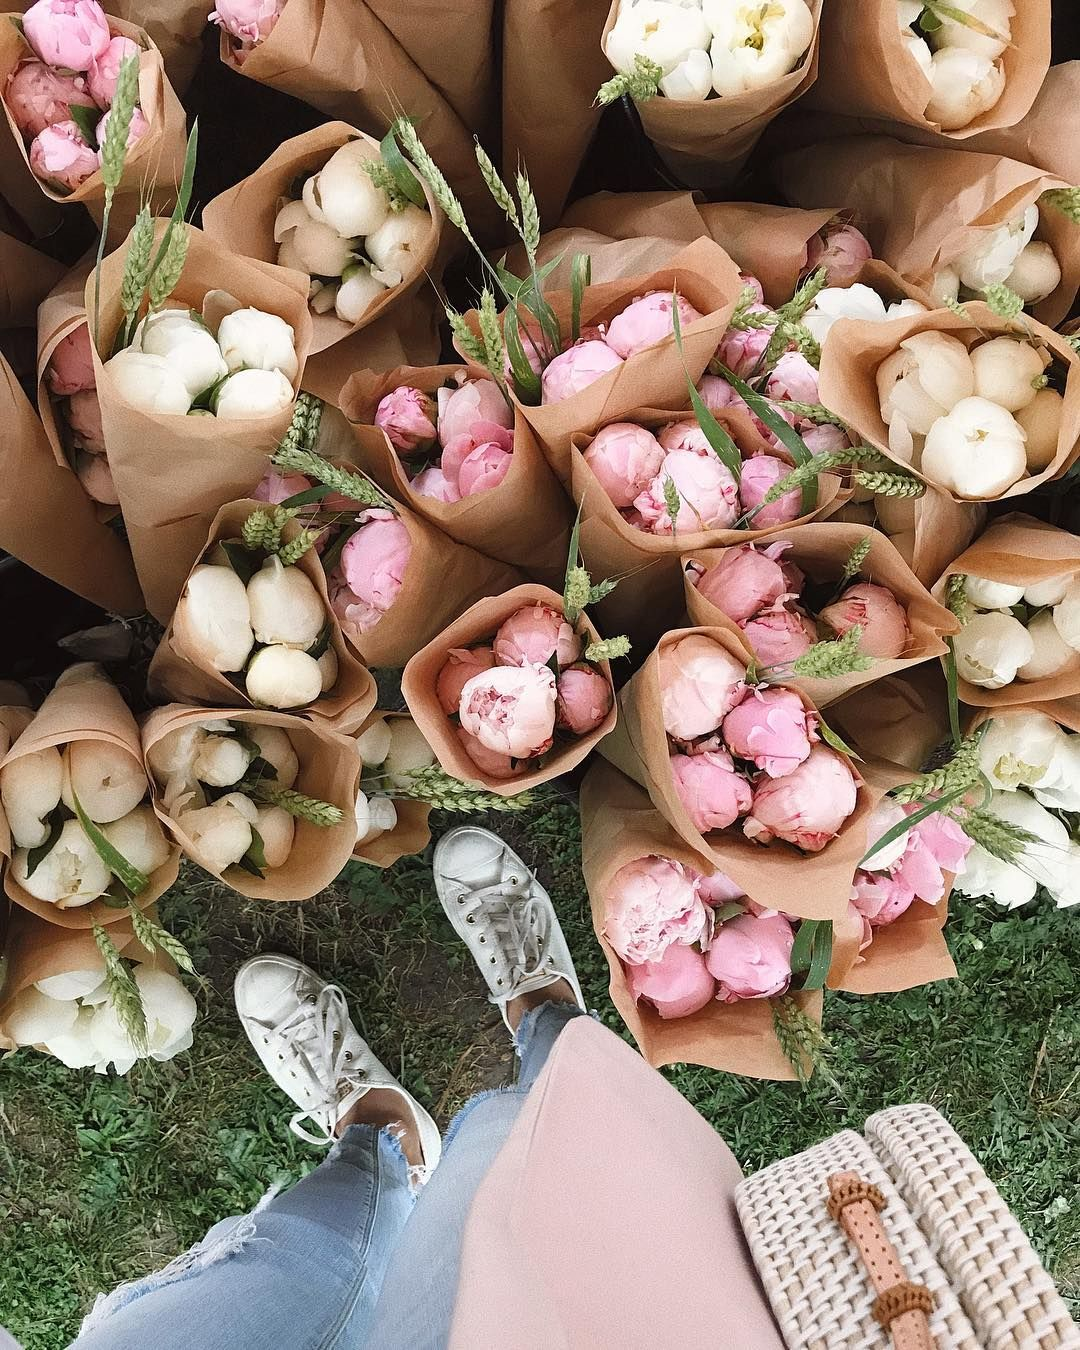 Toronto Is Hosting A Massive Outdoor Flower Market All Summer Long Flower Market Outdoor Flowers Flowers